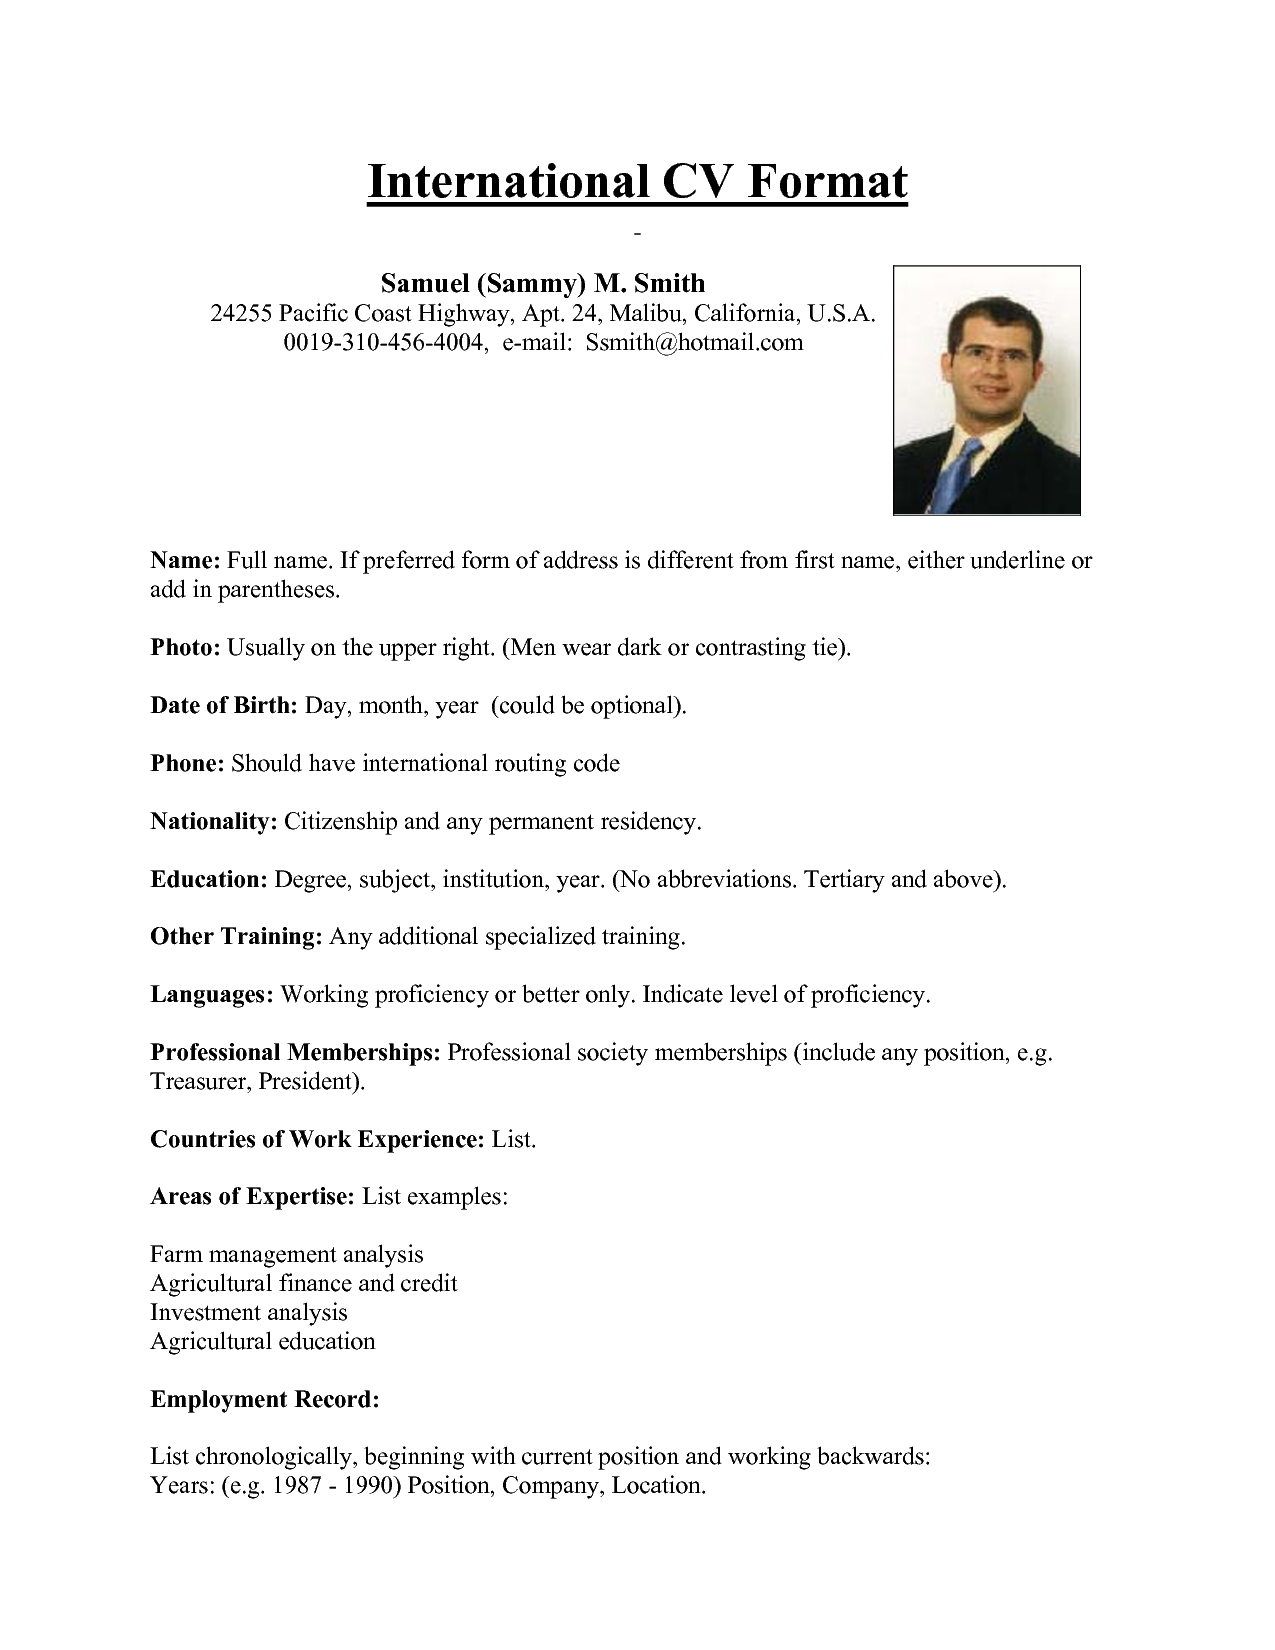 international resume template Sample Format Of Resume. Clean & Professional  One Page Resume .